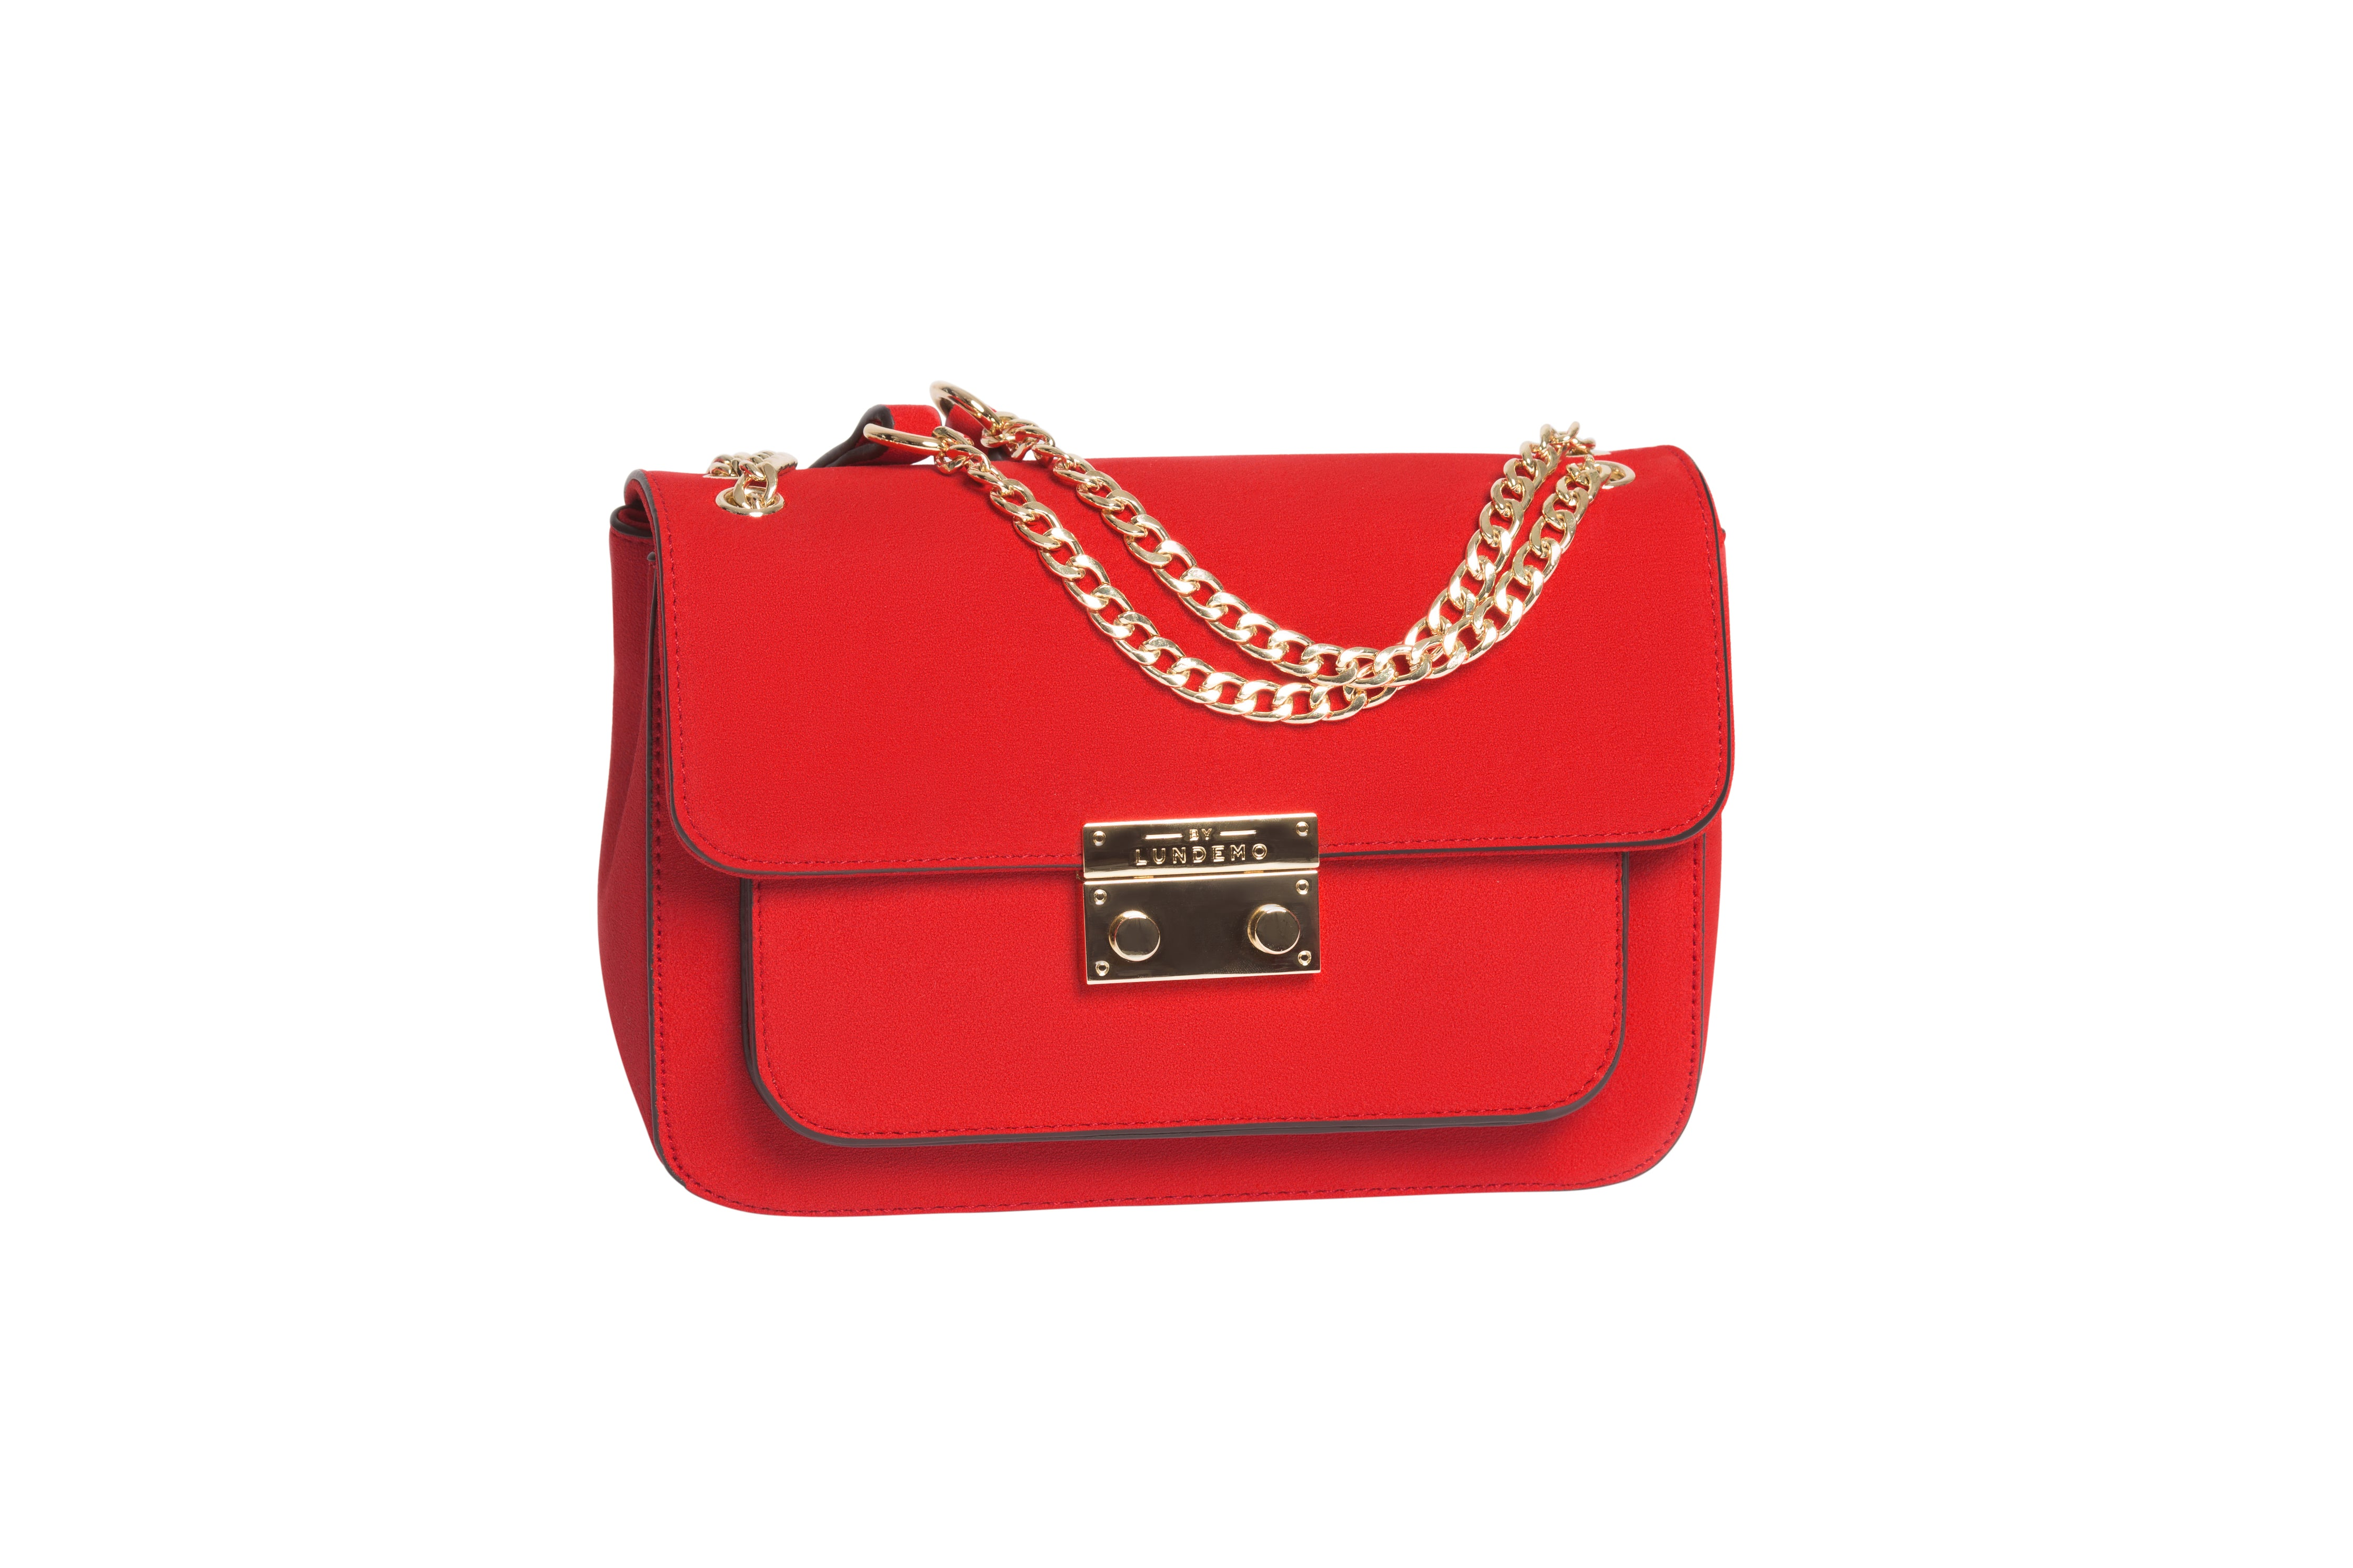 a135f3eb12a0 OPRAH RED BAG - BYLUNDEMO is a Swedish fashion house that produces  exclusive women s bags in elegant